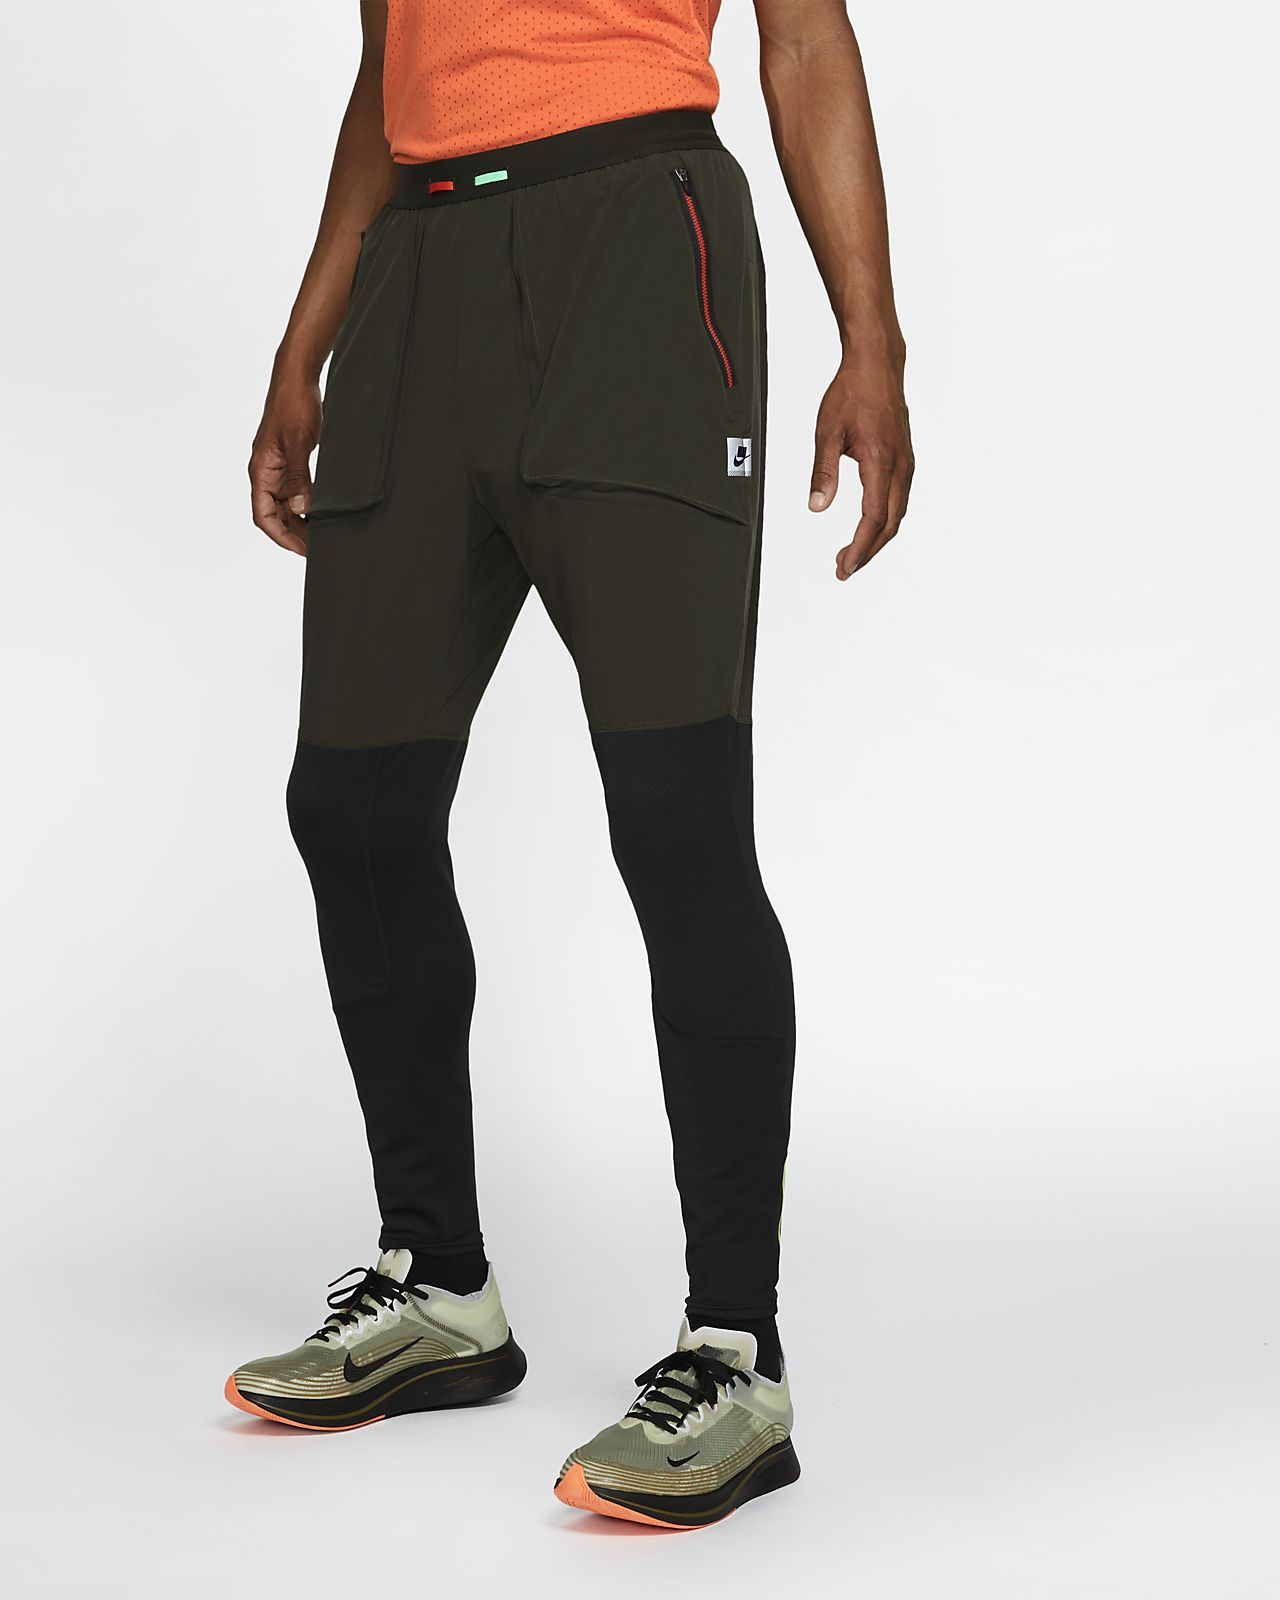 Nike Wild Run Men's Running Pants